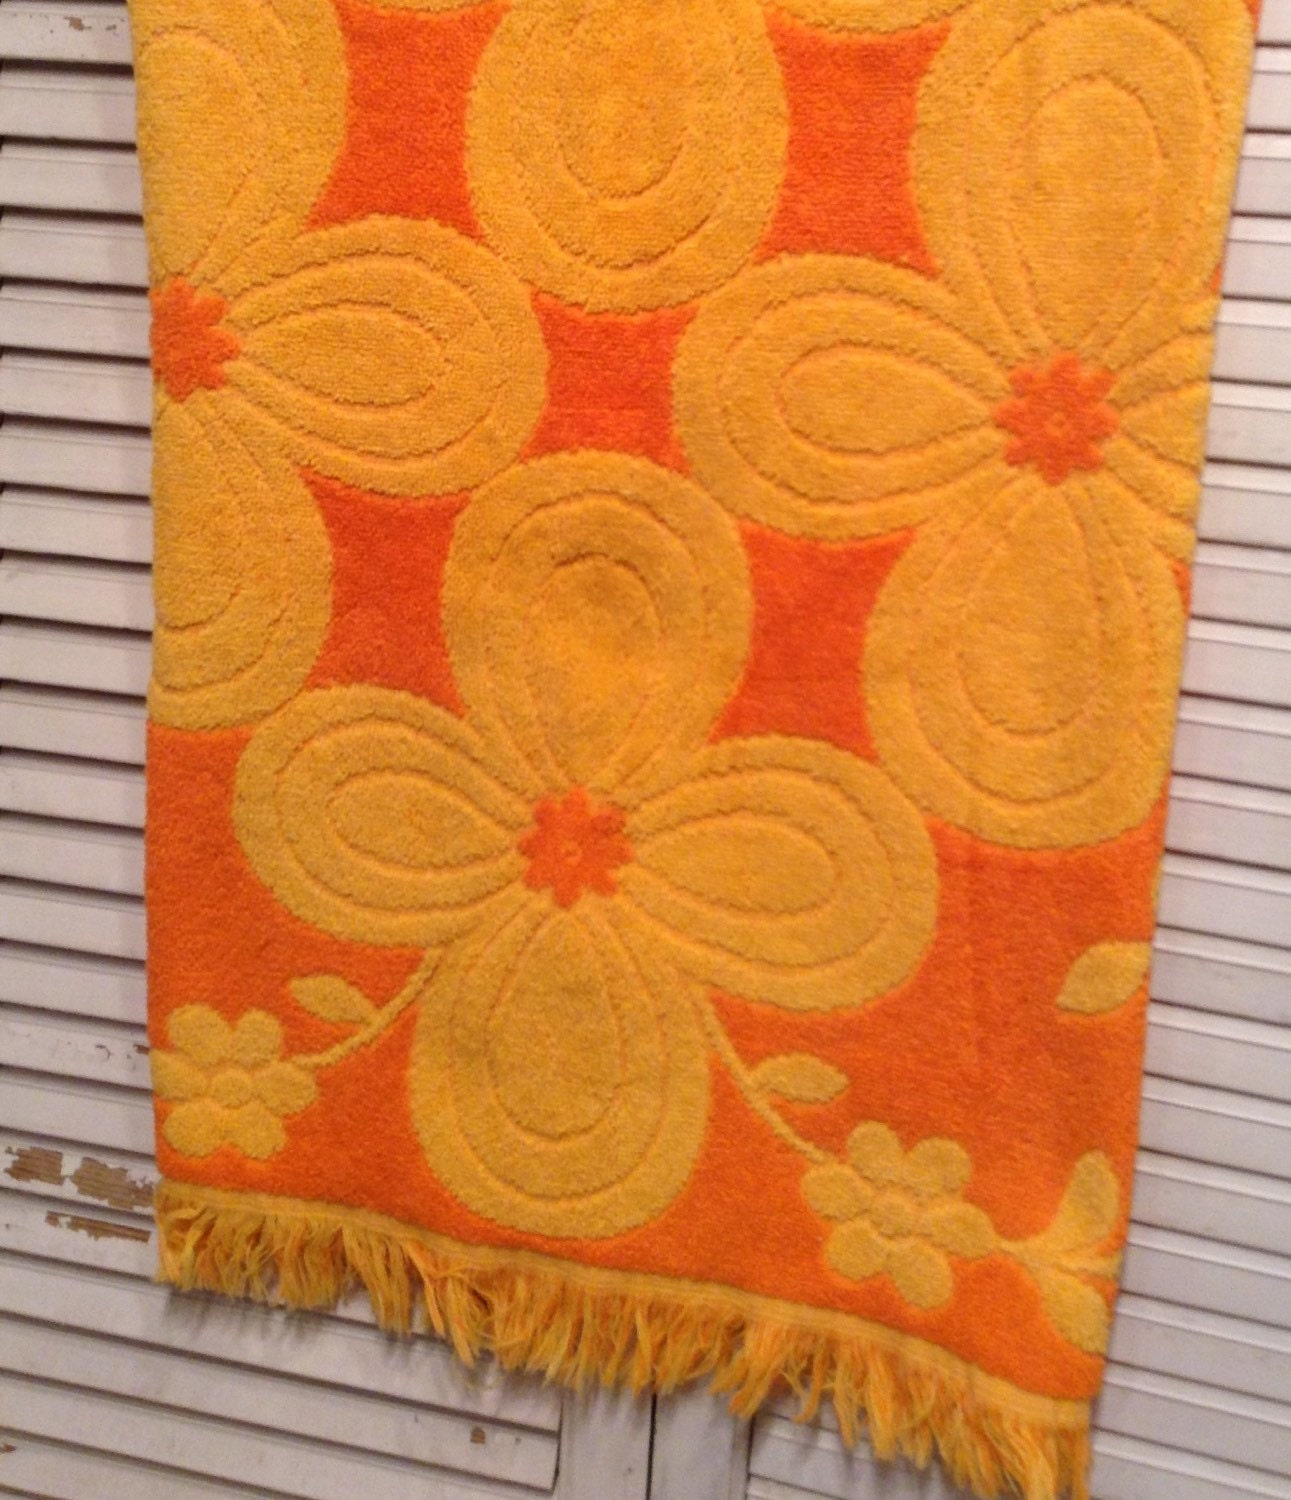 Reproduction Vintage Bath Towels: Vintage Bath Towel Orange Yellow Daisy Retro Modern Cannon